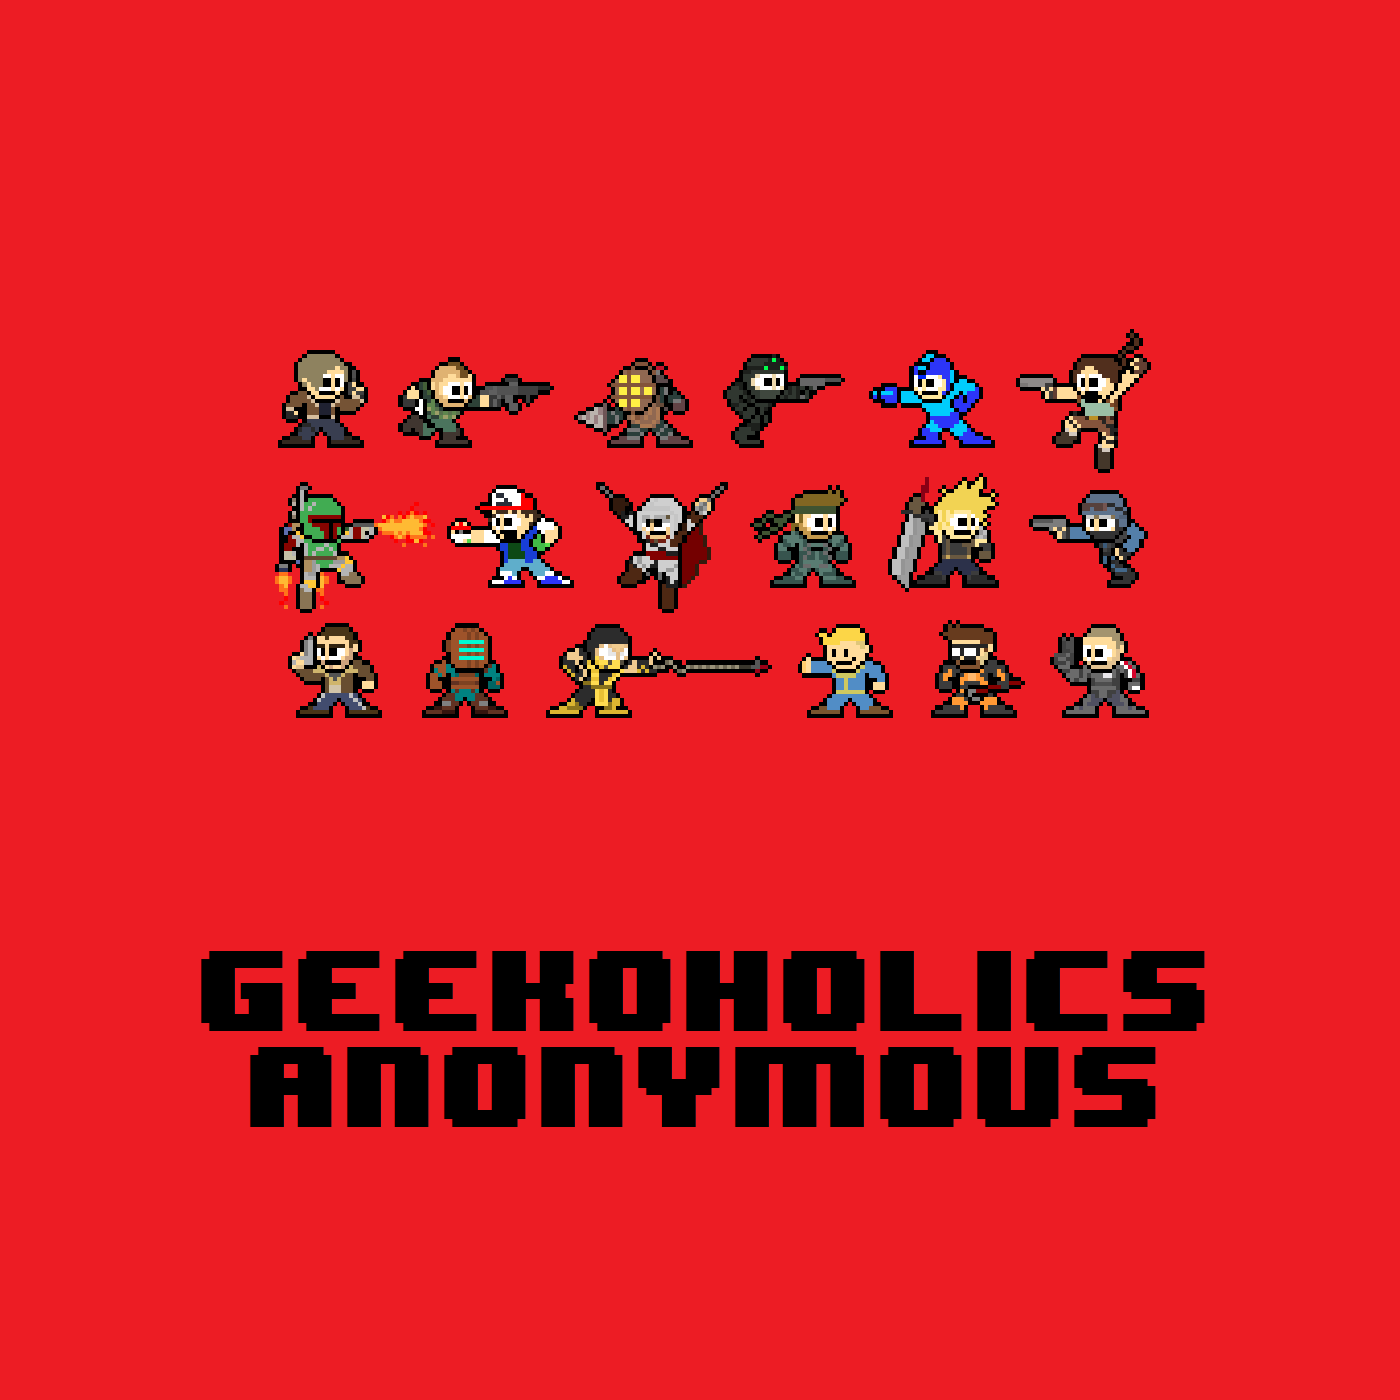 The Ascent, PS5 SSD, Jungle Cruise and more - Geekoholics Anonymous Podcast 317 show art